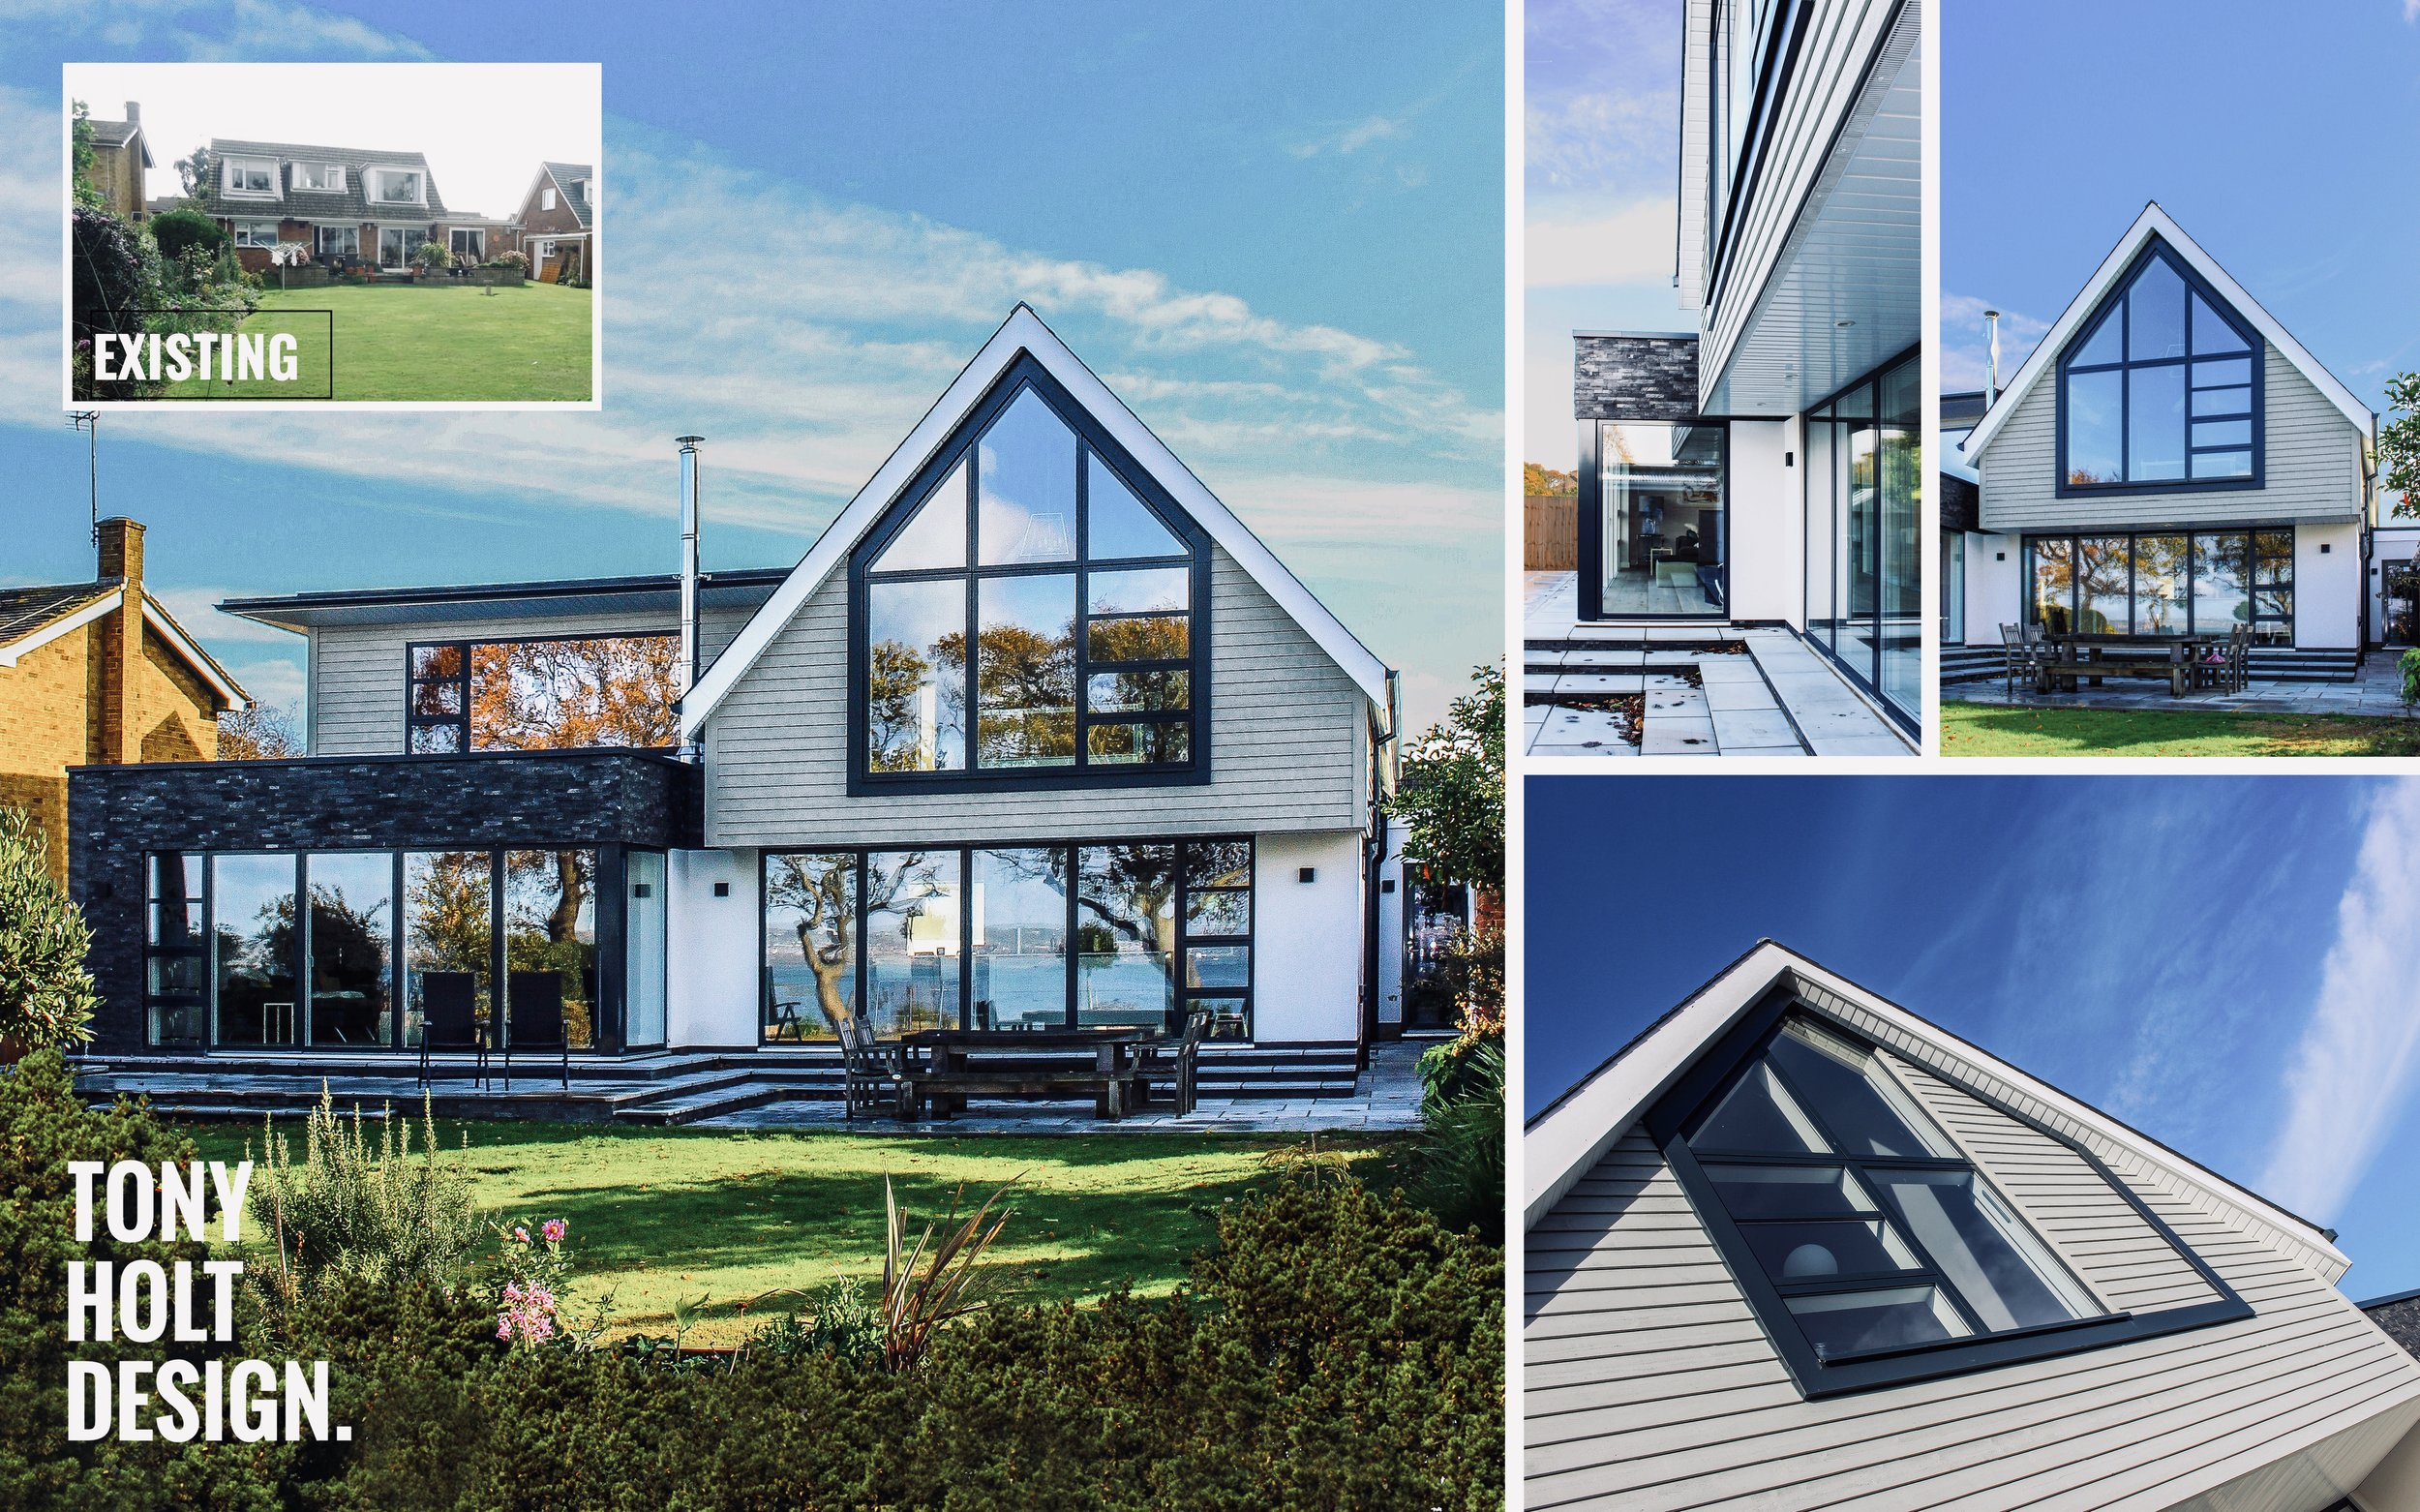 Tony Holt Design_Self Build_Remodel_Collage_01_WEB.jpeg